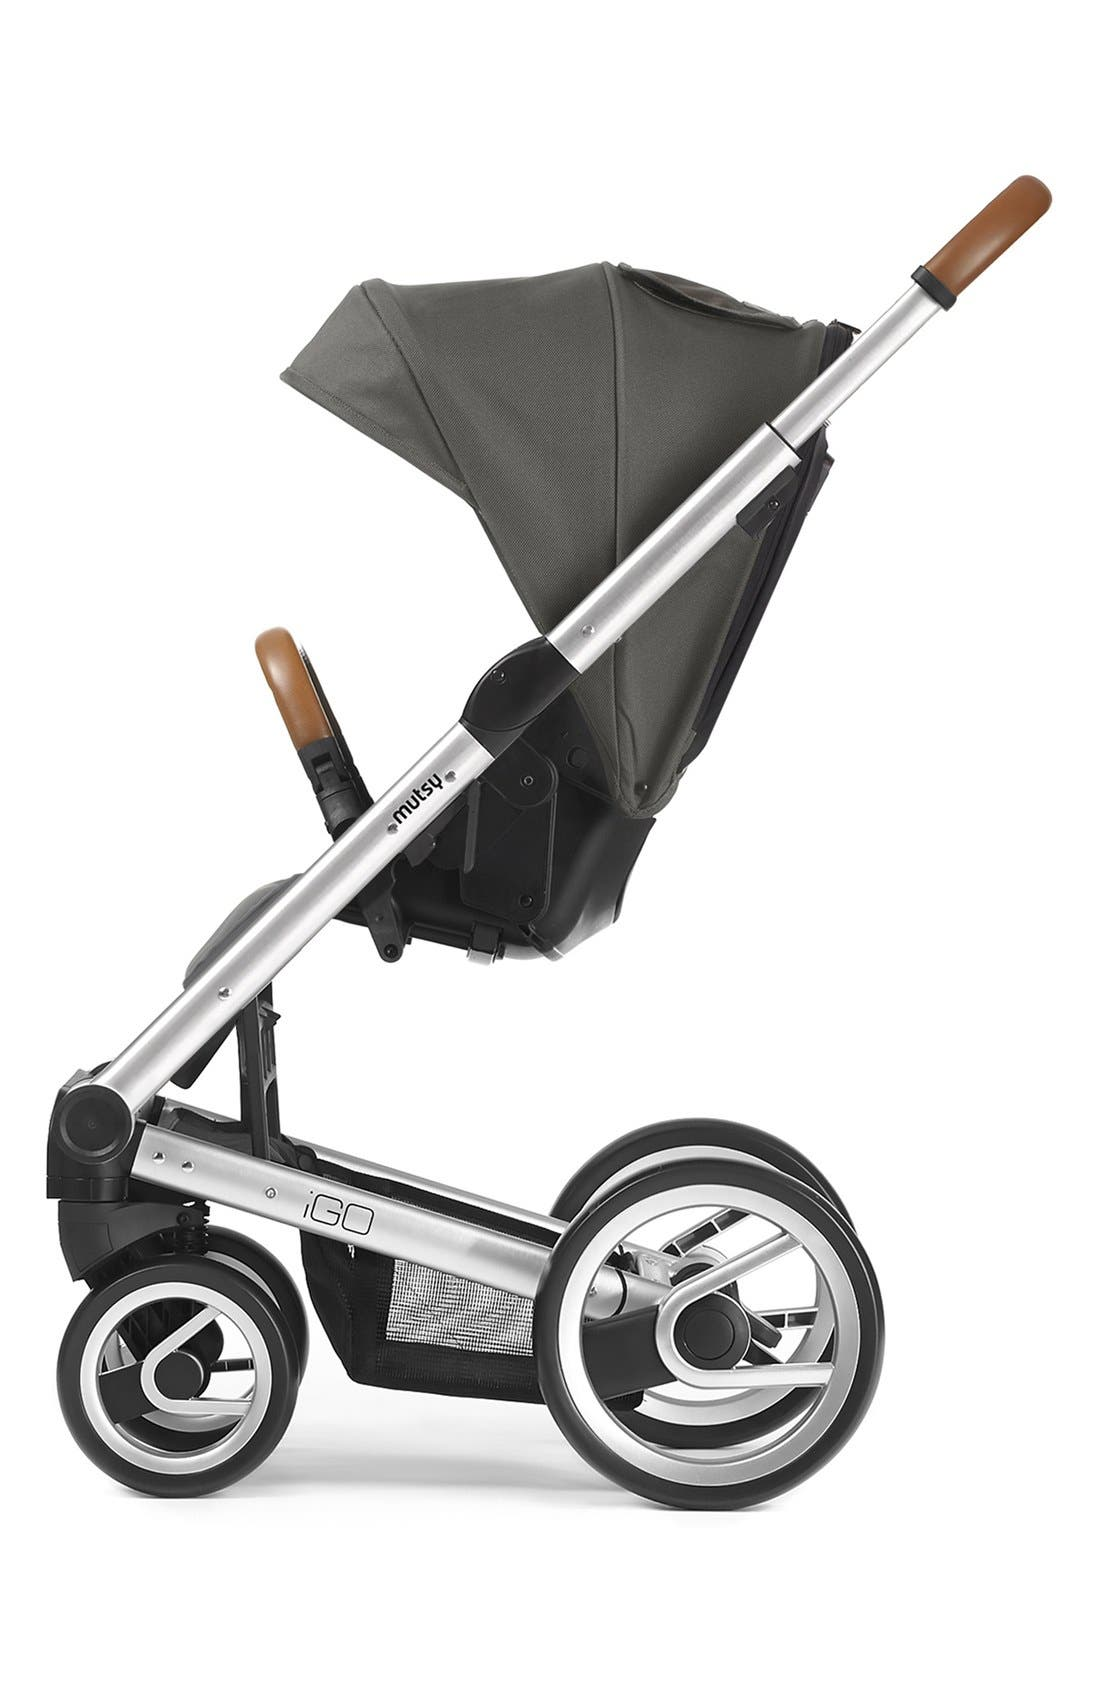 Igo - Urban Nomad Stroller,                             Main thumbnail 1, color,                             Silver/ Dark Grey